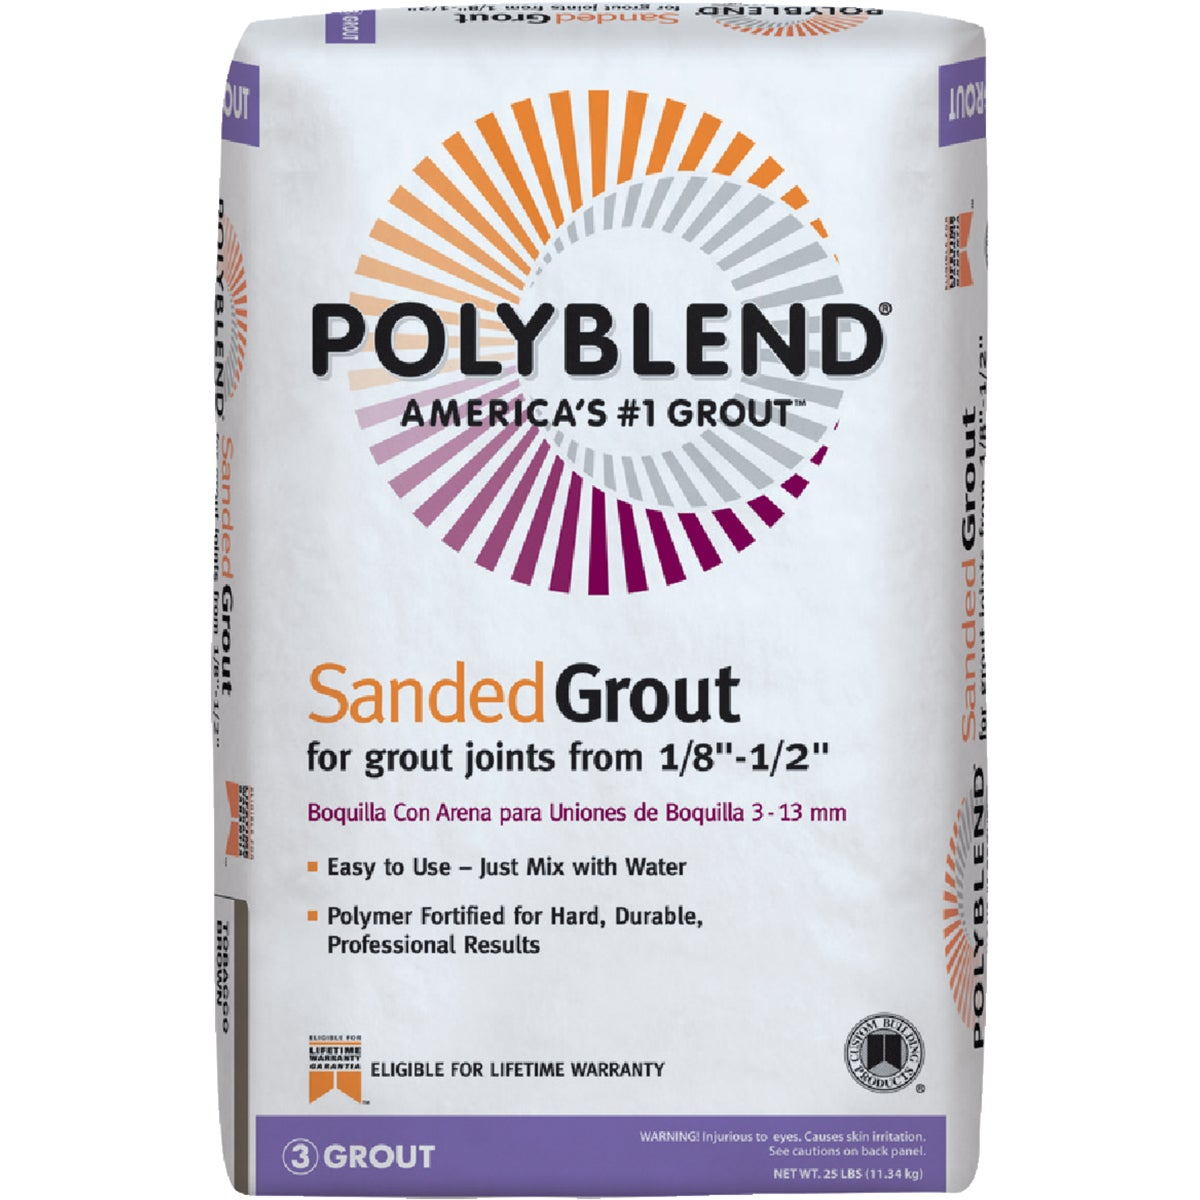 25LB HAYSTACK SNDD GROUT - PBG38025 by Custom Building Prod